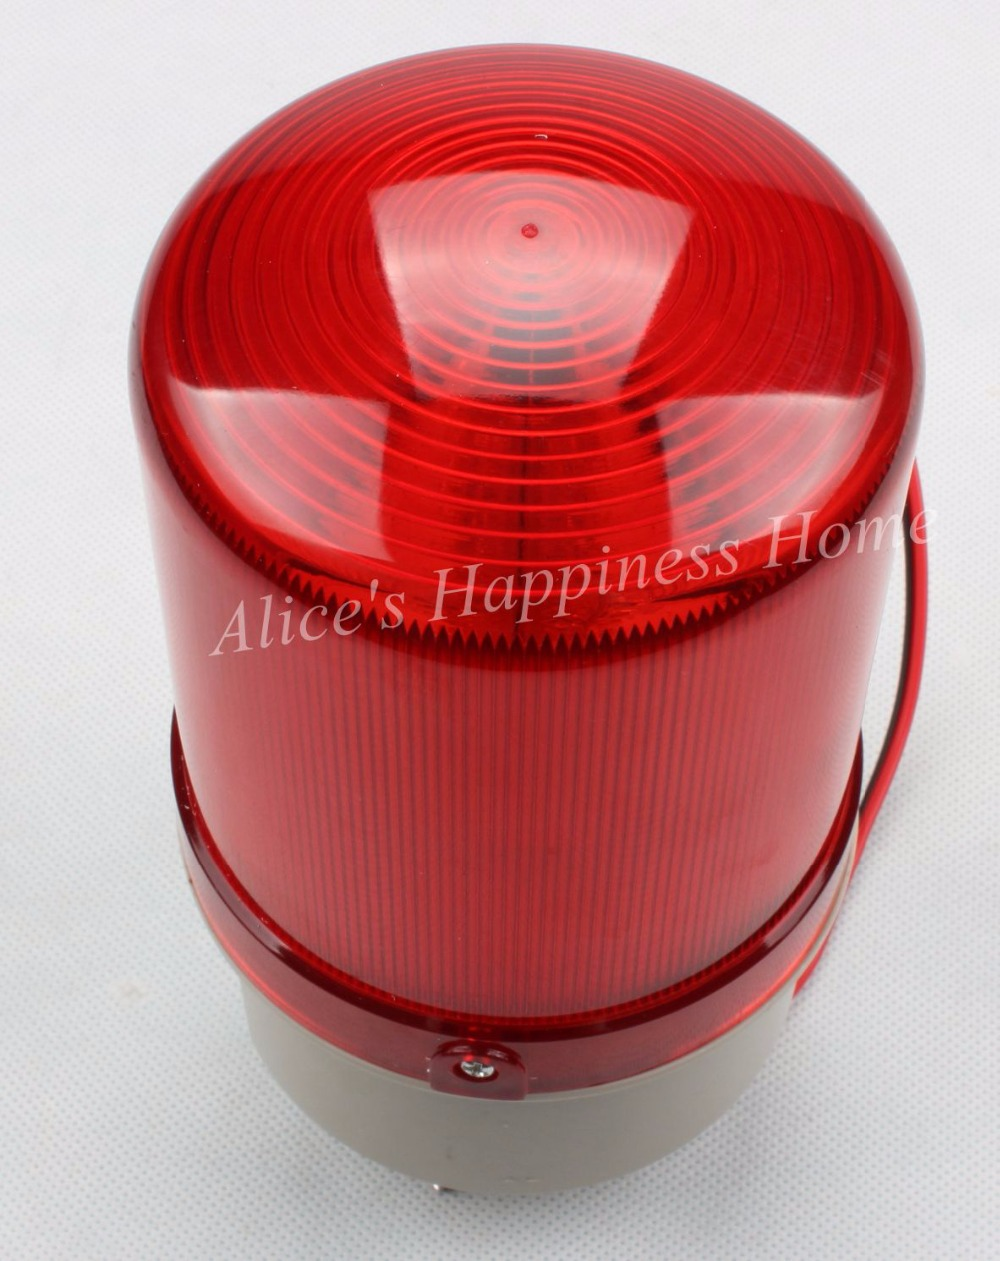 AC220V Wired Flash Strobe Blinking Siren Sound and Quiet Alarm 2in1 Industrial Warning Light with Alarm LTE-5110 dmwd ac220v wired flash strobe blinking siren sound industrial warning light with alarm lte 1101j indicator light